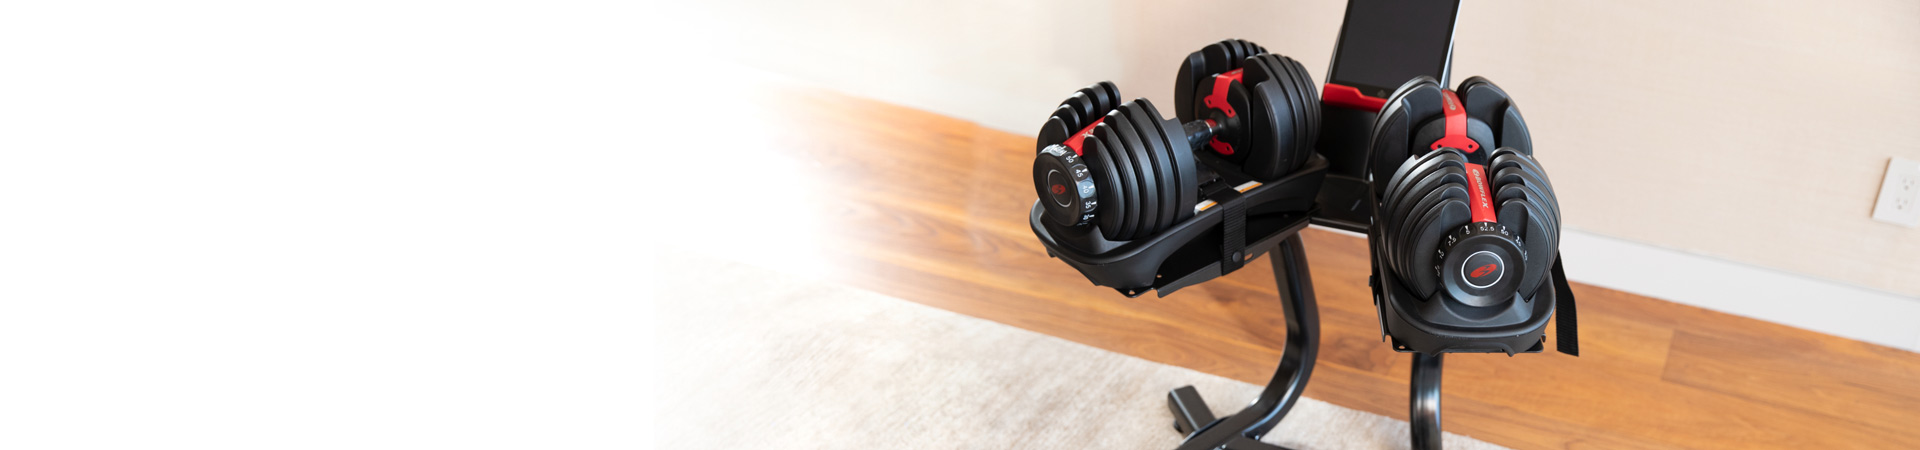 Bowflex Dumbbell Stand